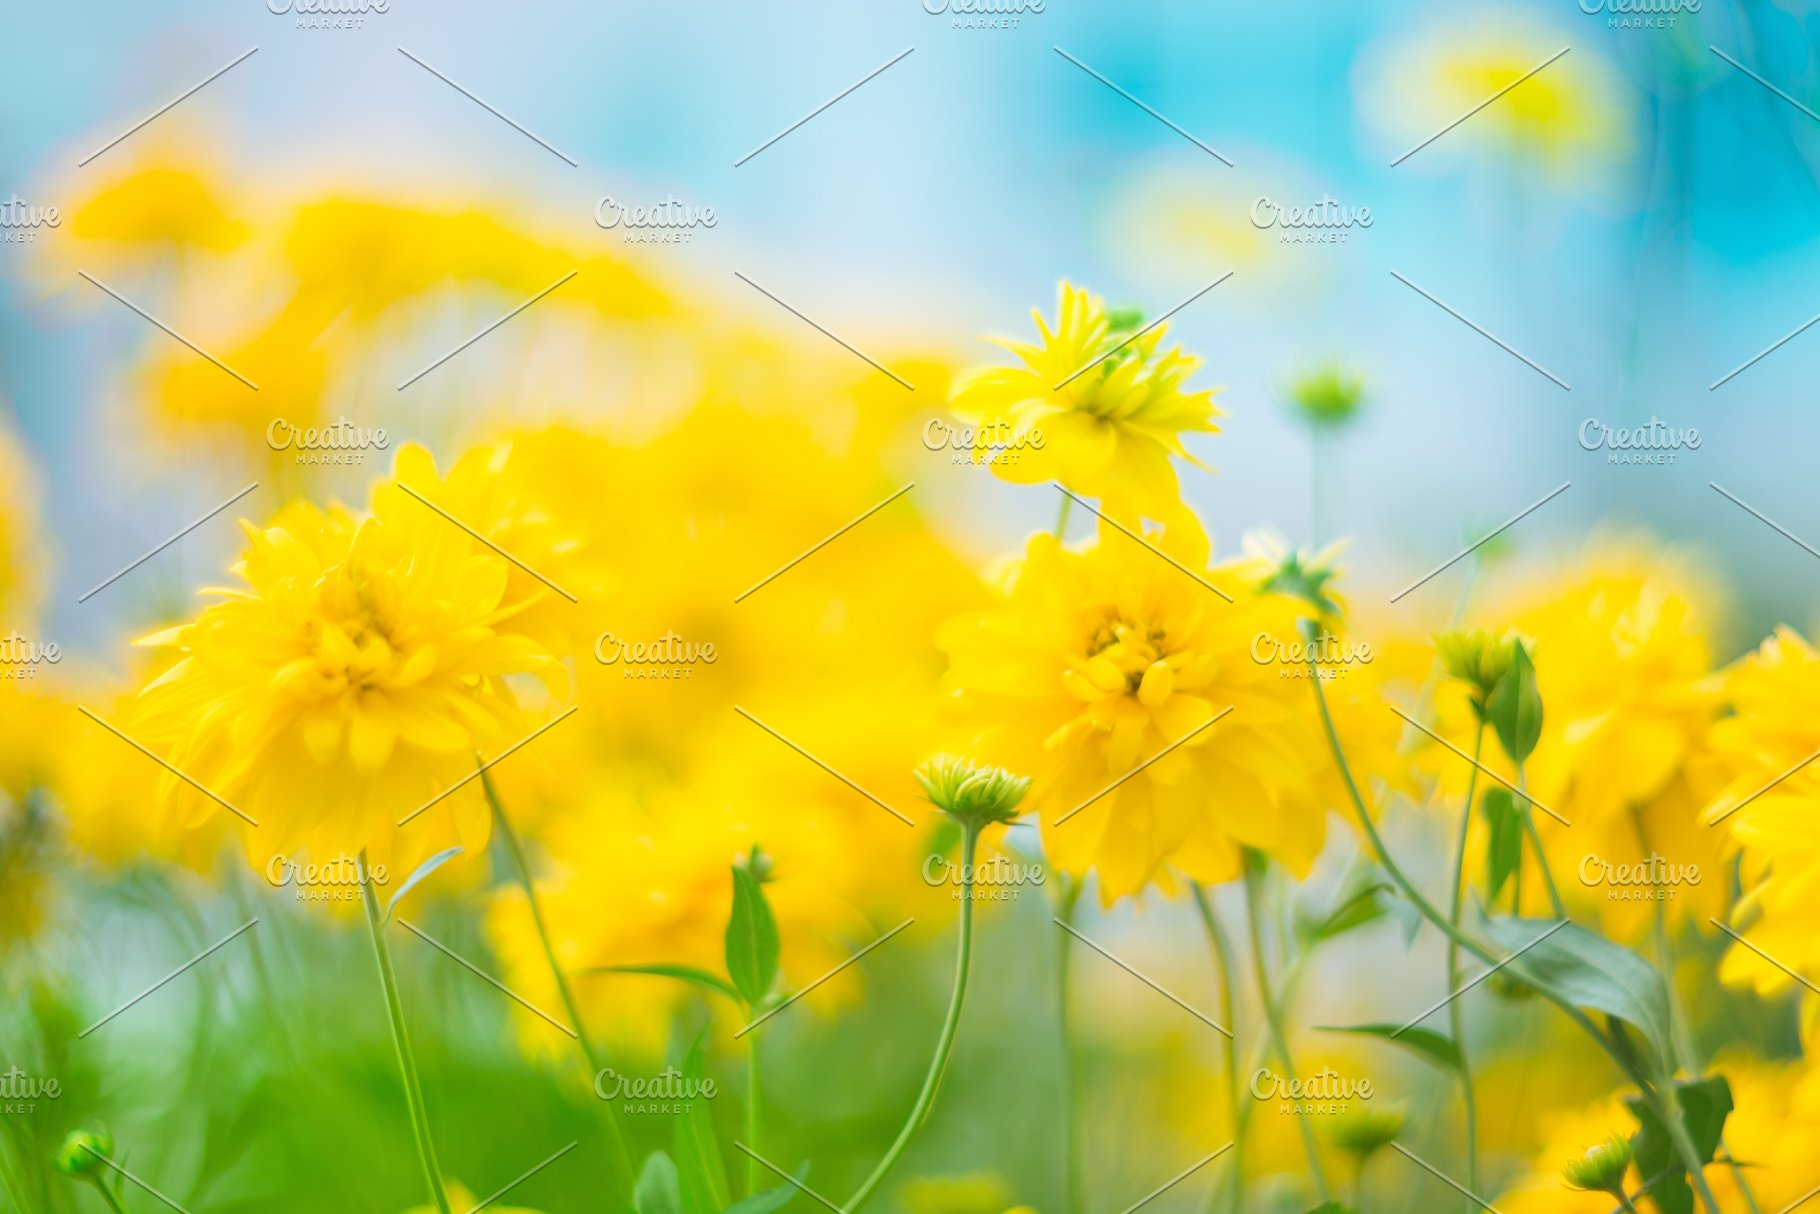 Beautiful Yellow Flowers With A Very Soft Focus On The Background